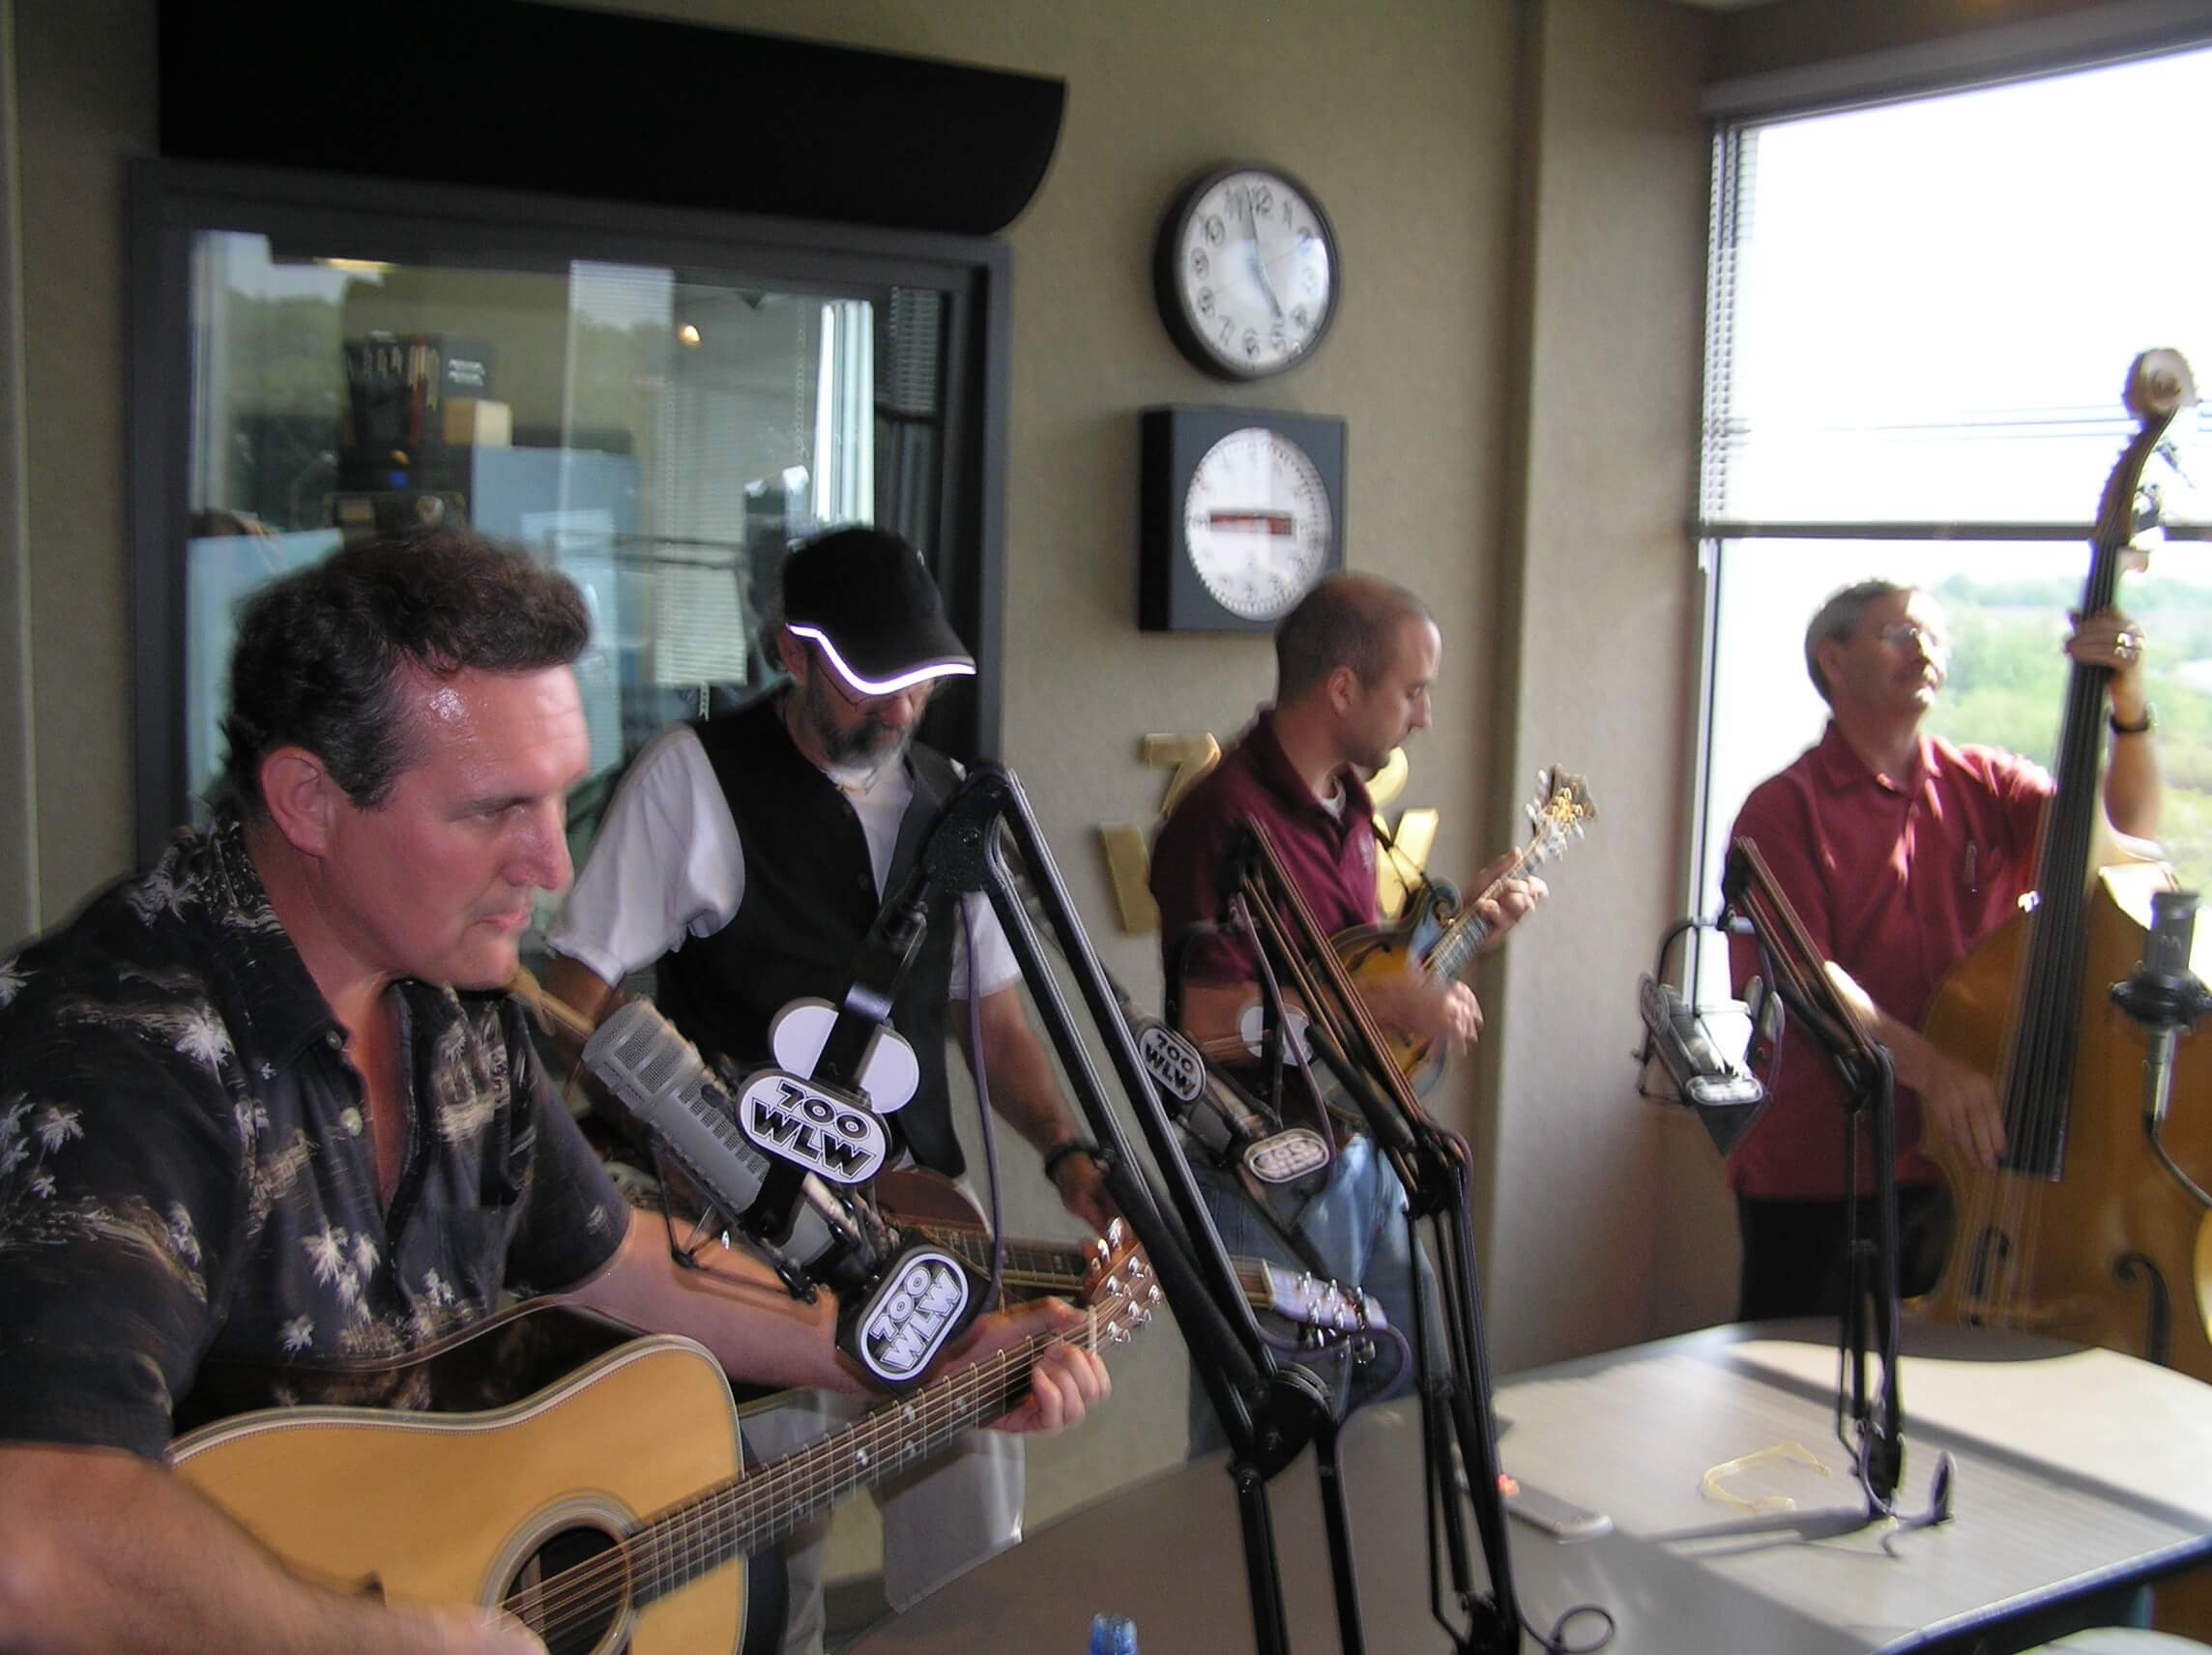 One Iota performing live on WLW radio with Gary Burbank